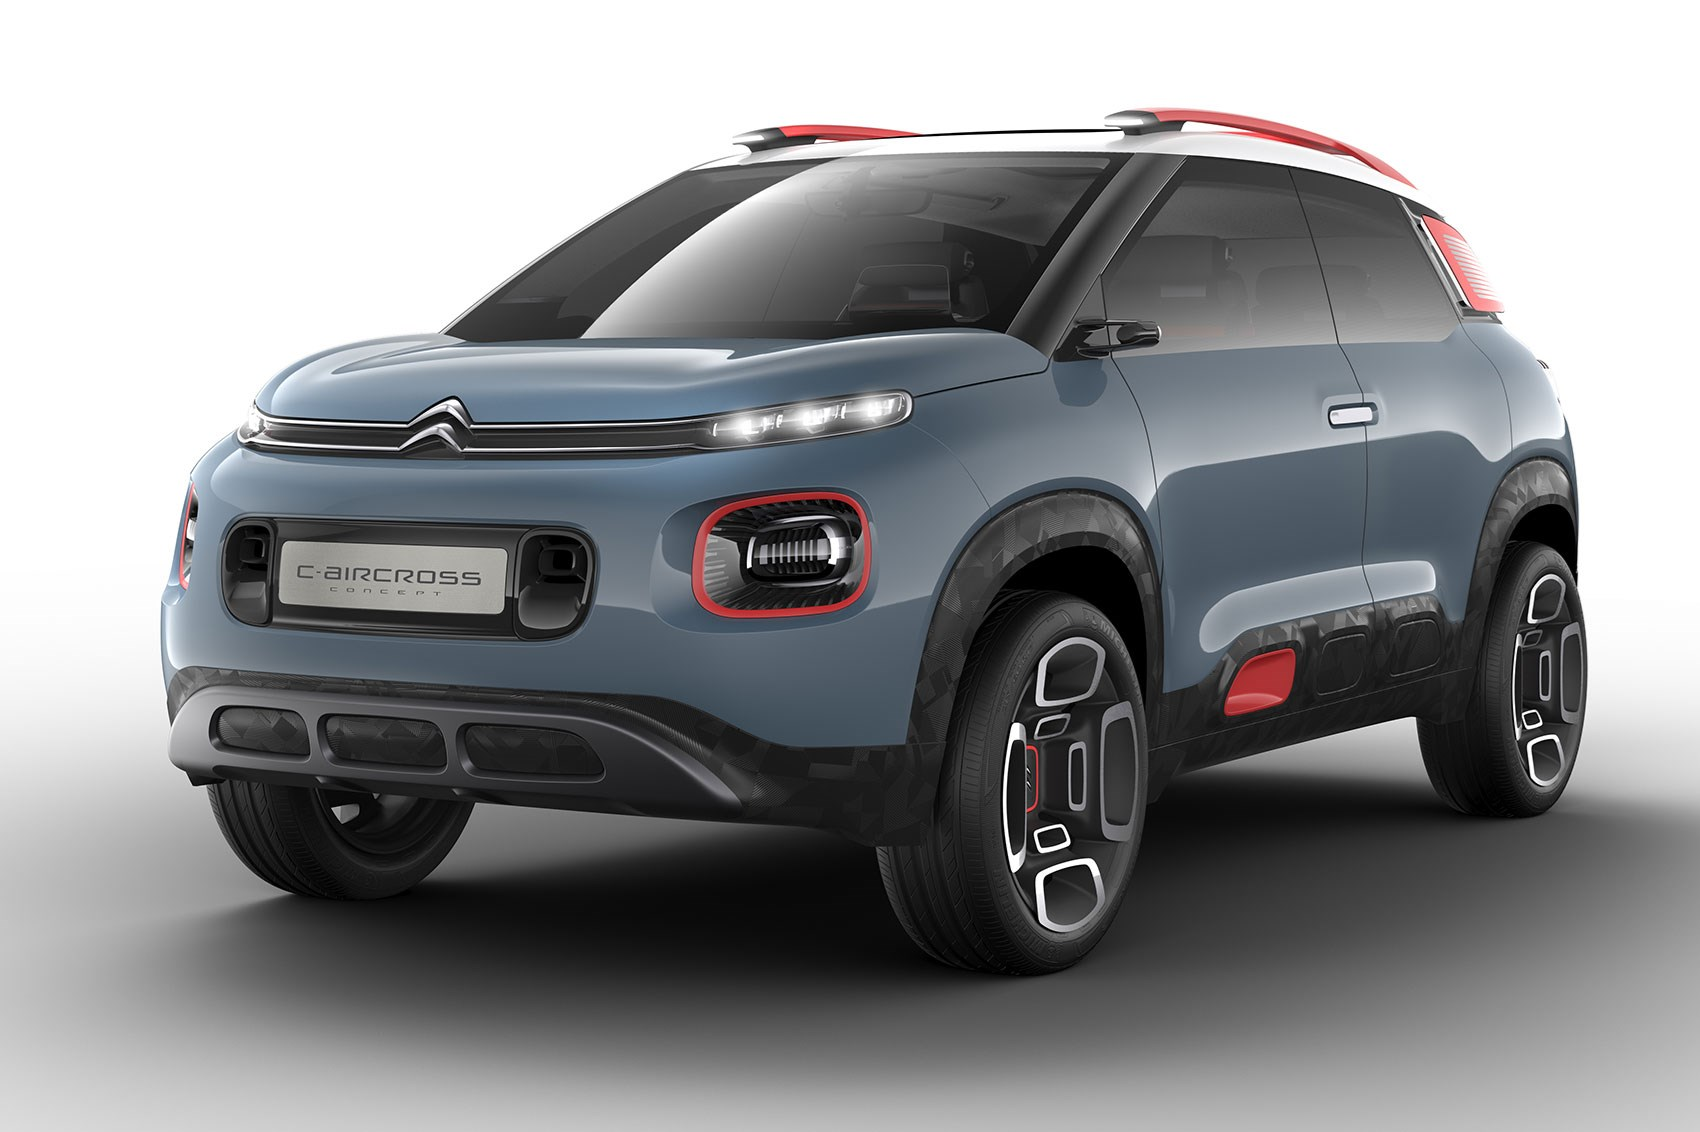 citroen c aircross concept for 2017 geneva show picasso goes off road by car magazine. Black Bedroom Furniture Sets. Home Design Ideas